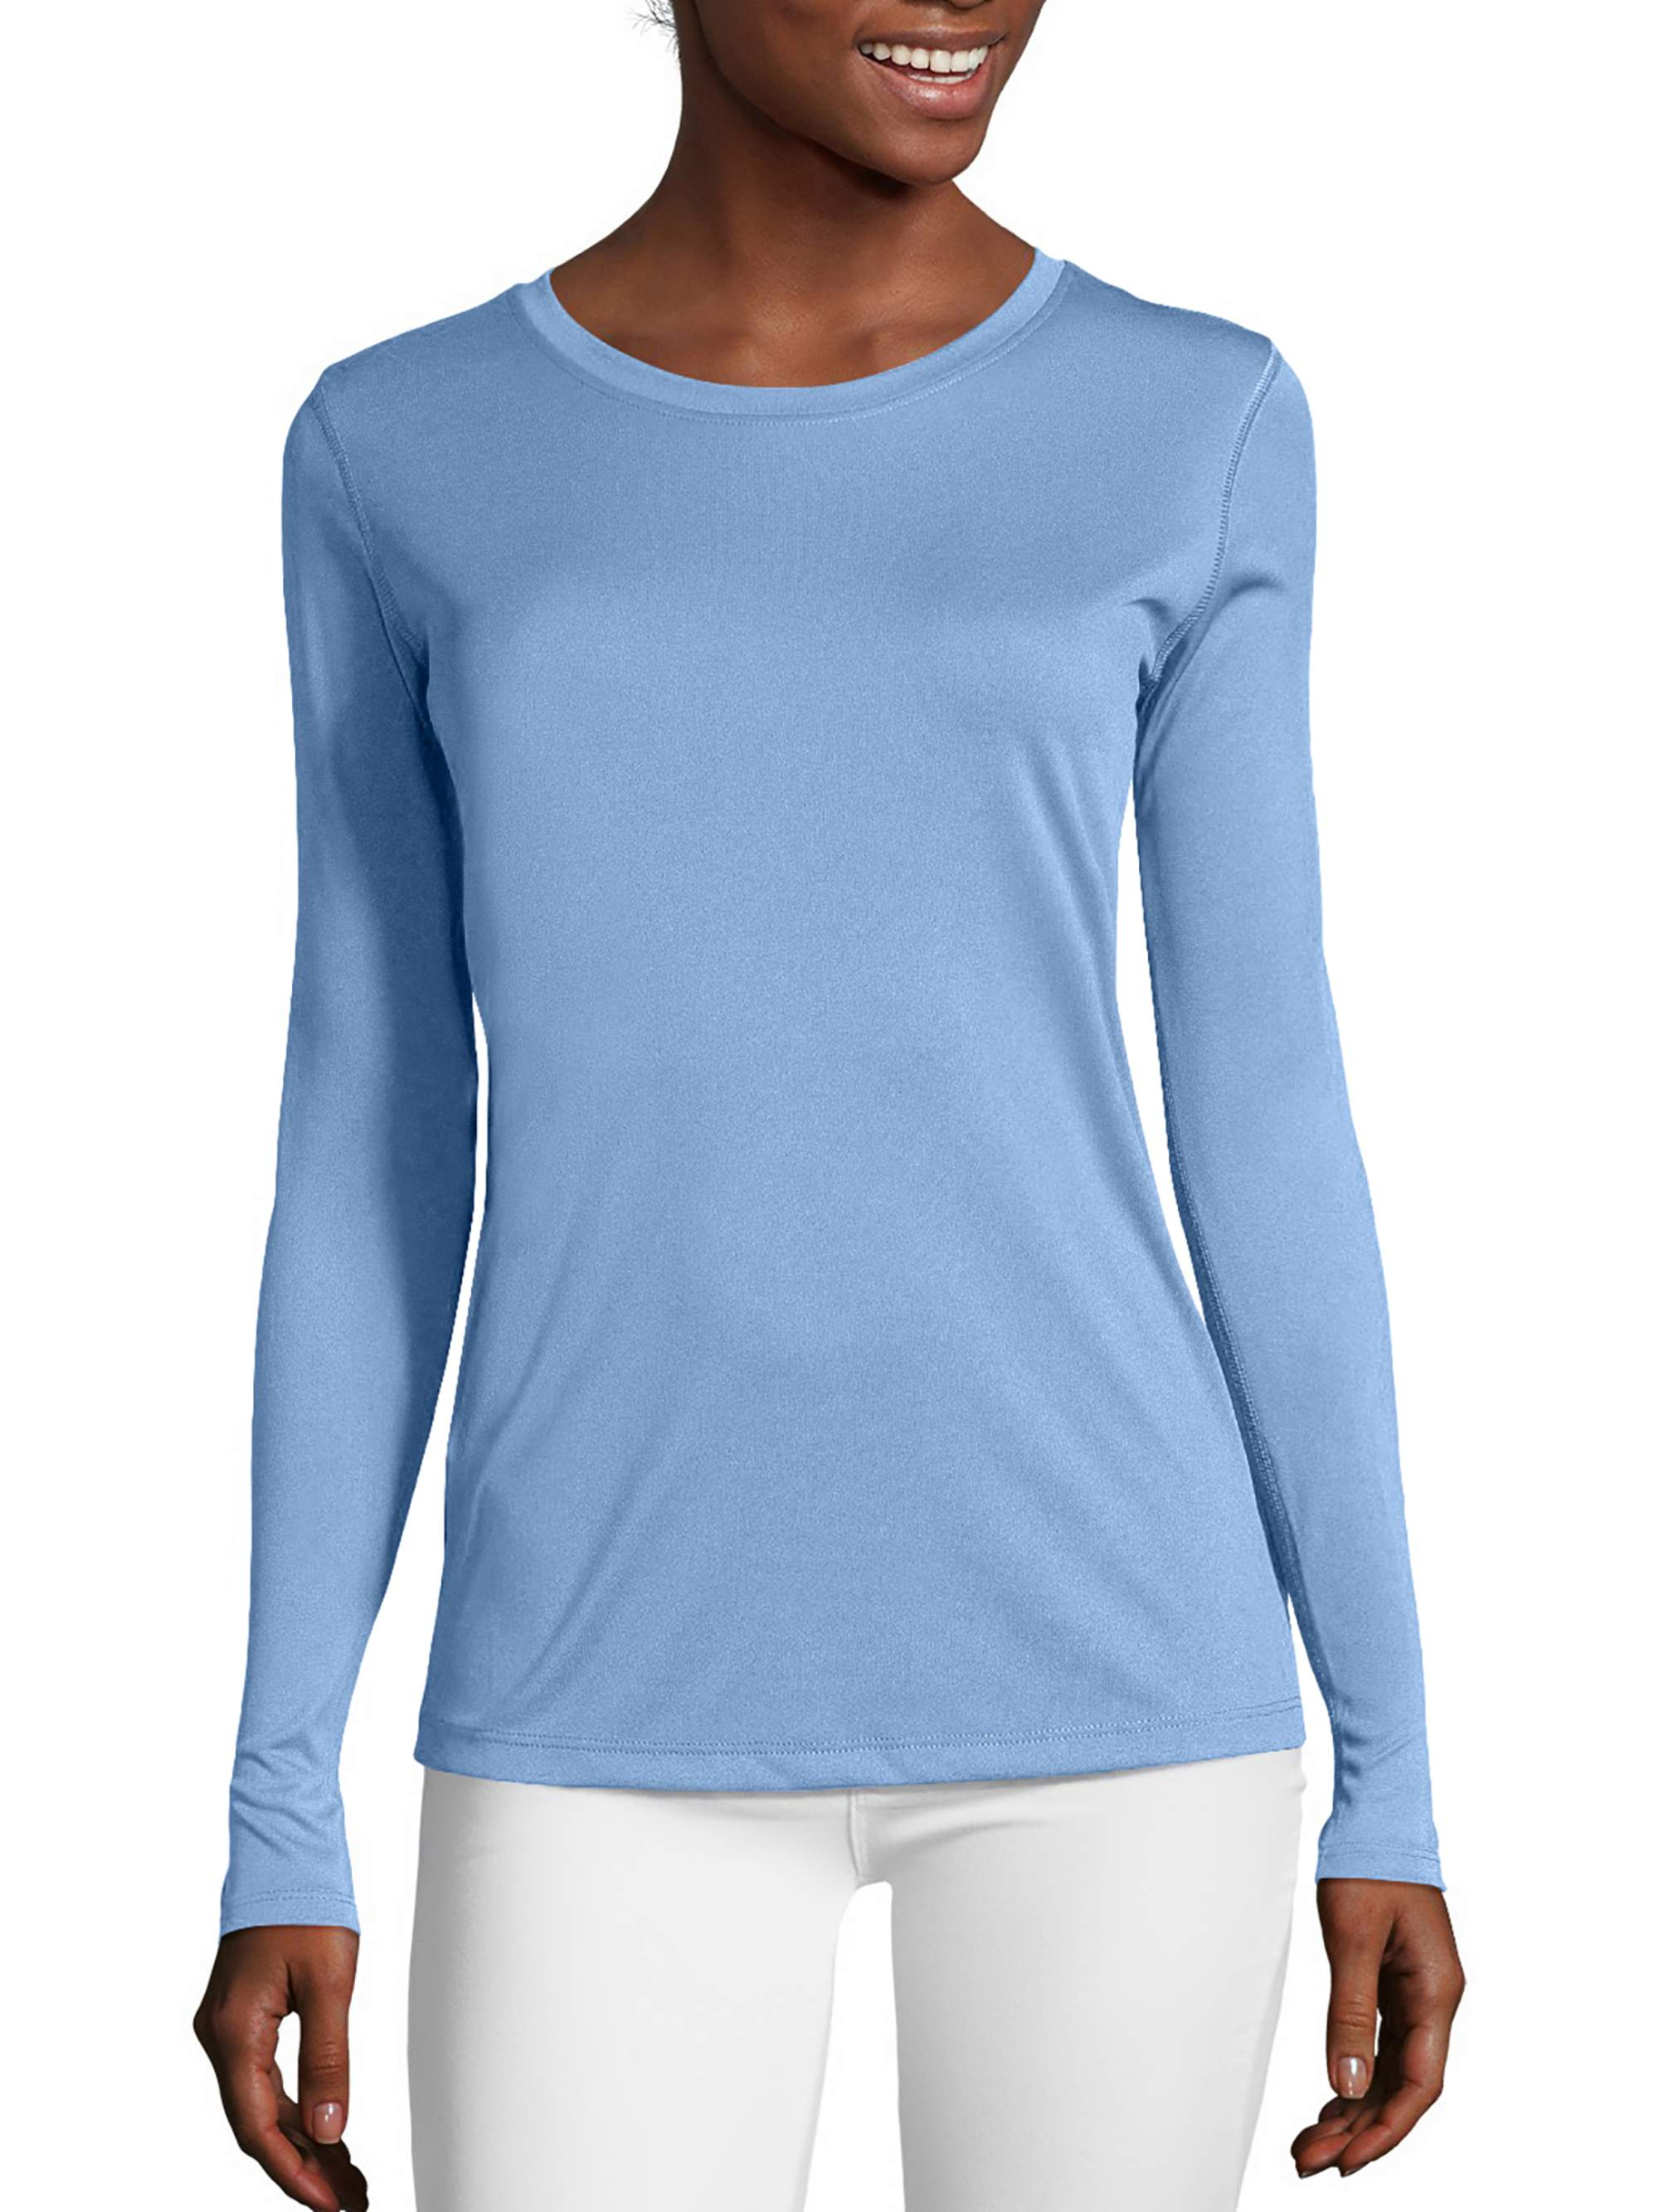 Tri-Mountain 100/% Combed Cotton Jersey-Sleeve Johnny Collar Knit Shirt 133